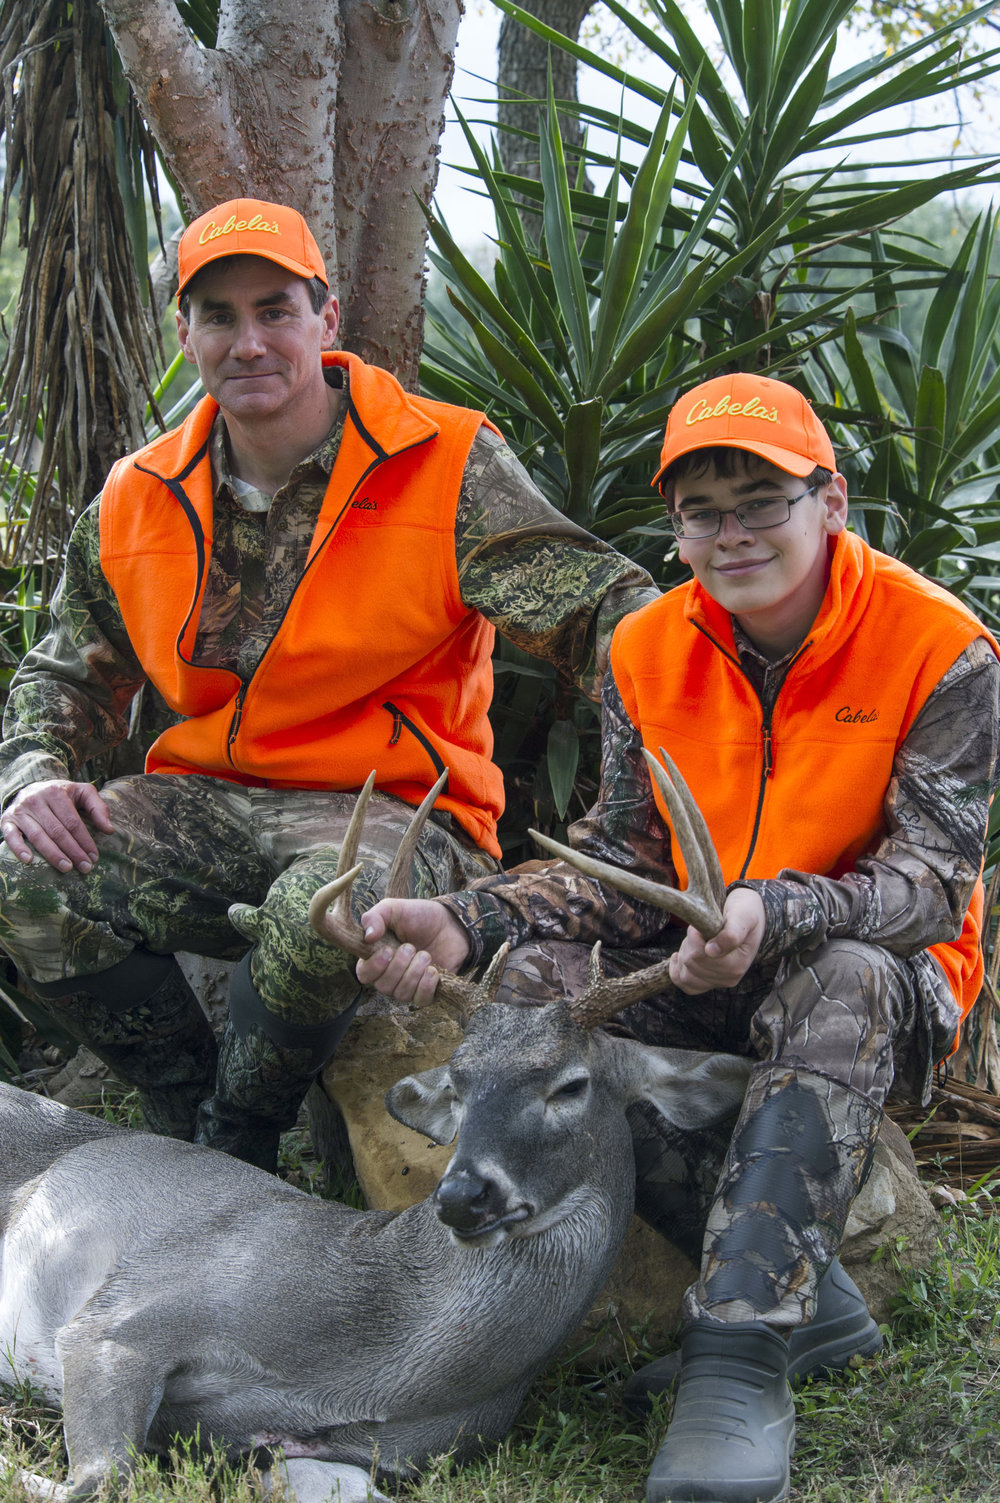 """- Paul and Michael Fraley from Houghton, MI, enjoyed the South Texas weather and were elated with Michael taking his first deer, a nice buck. Paul said, """"Hunting in the Upper Peninsula, Michigan, is way different than what we have experienced here!"""" Michael added, """"Yeah—I'm sure glad I was selected!"""""""